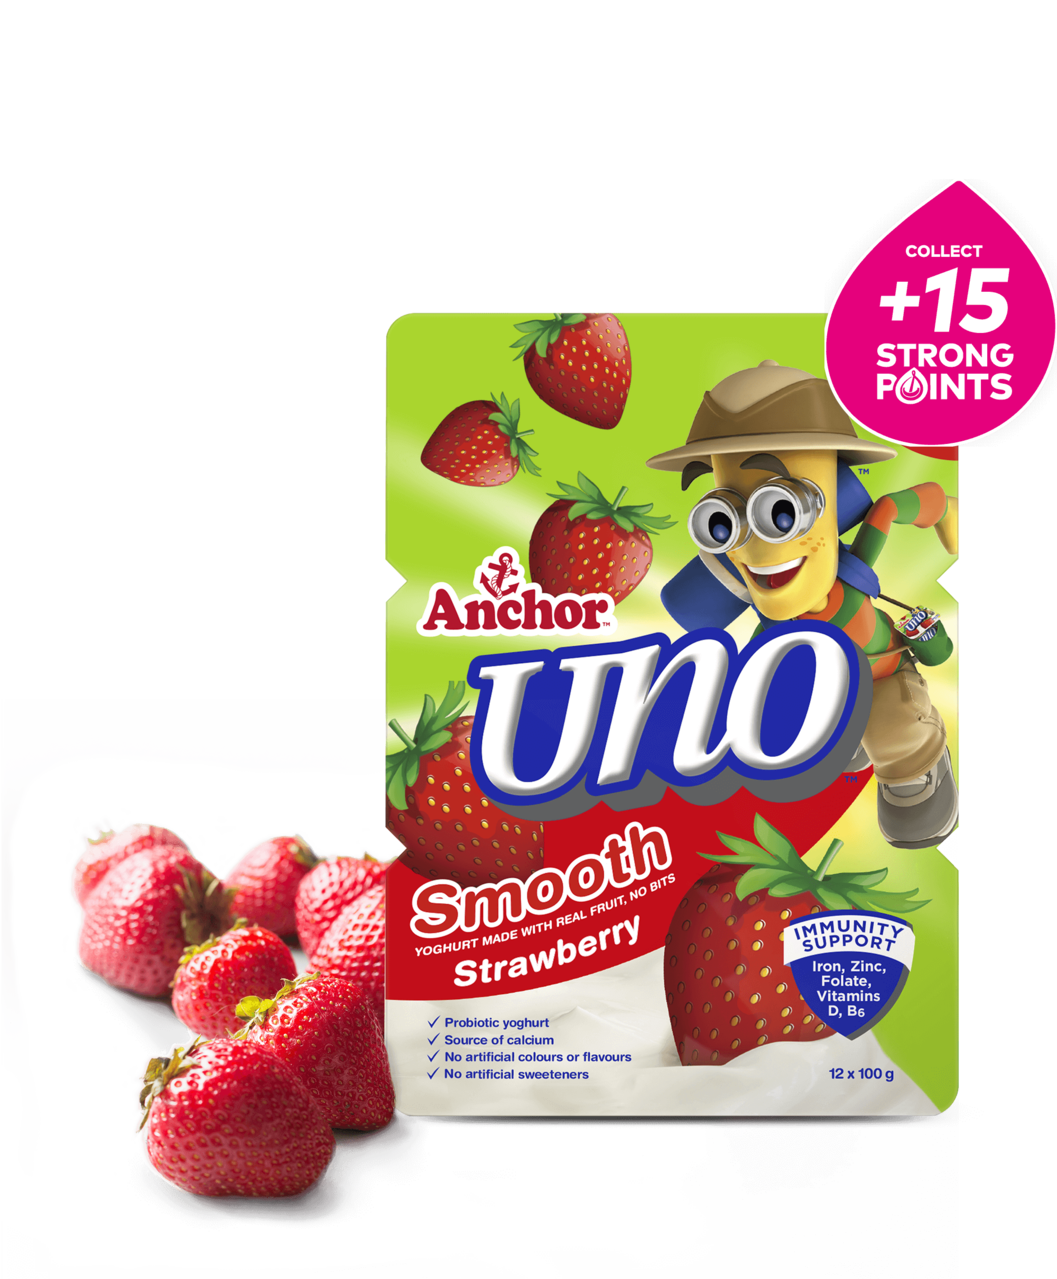 Anchor Uno Strawberry Yoghurt 12 x 100g pack